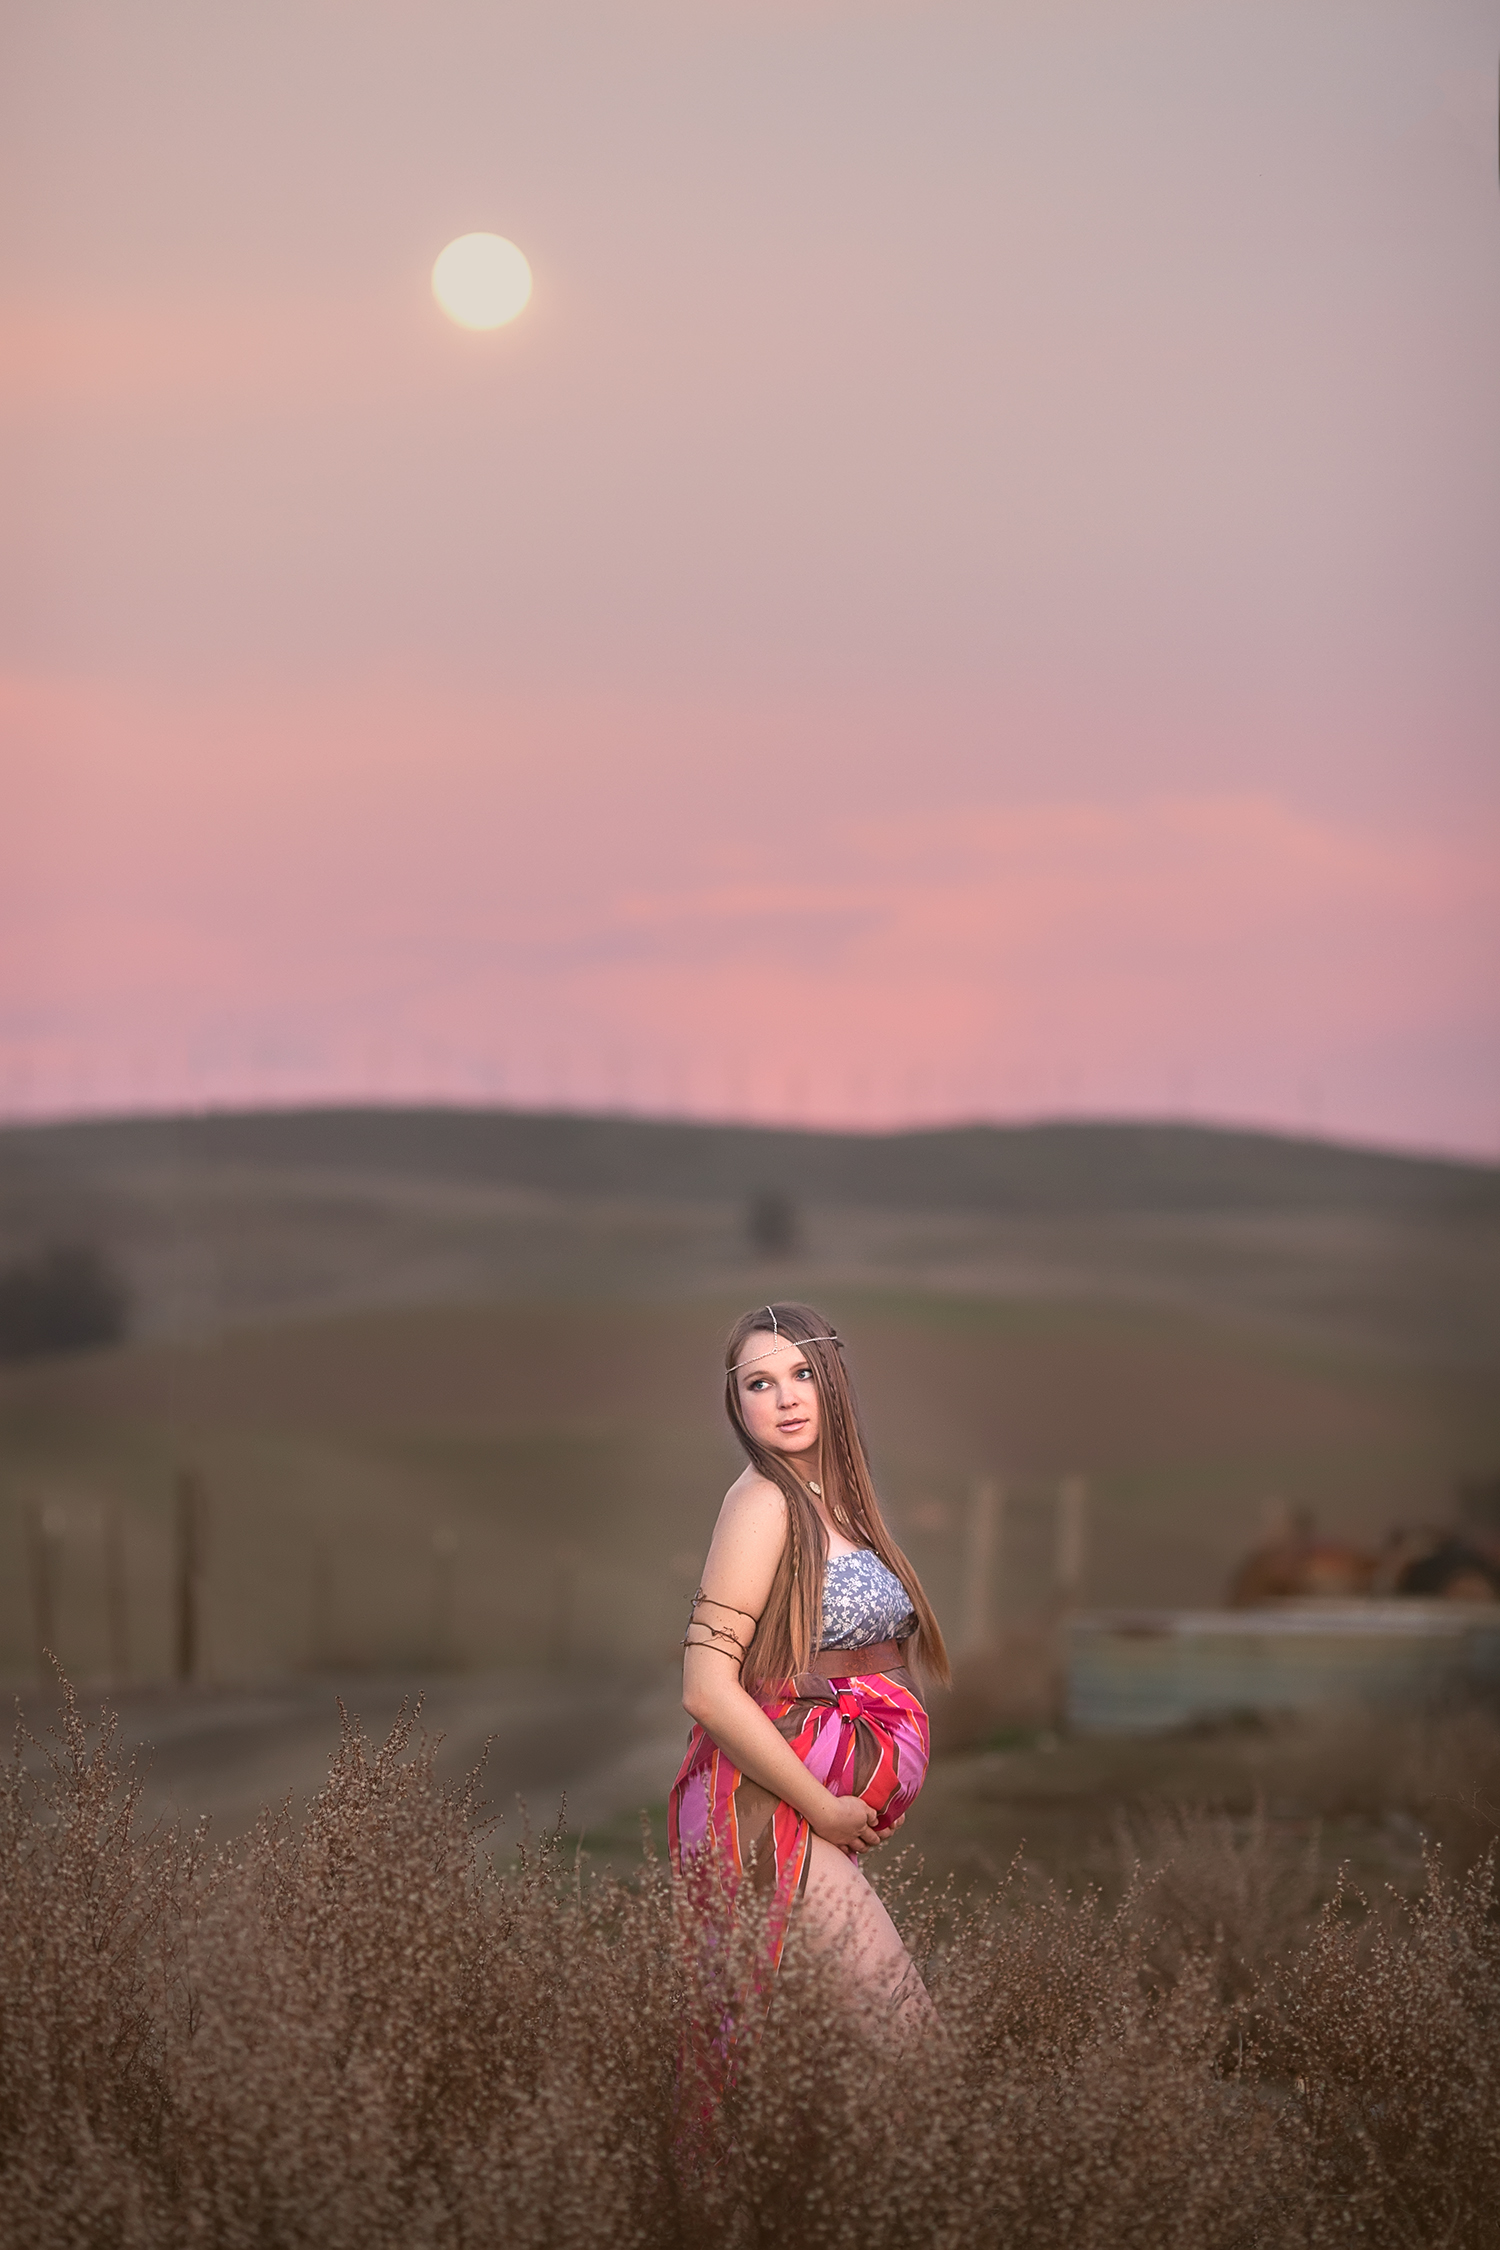 Dena_Rooney_Maternity_Portraits_028.jpg